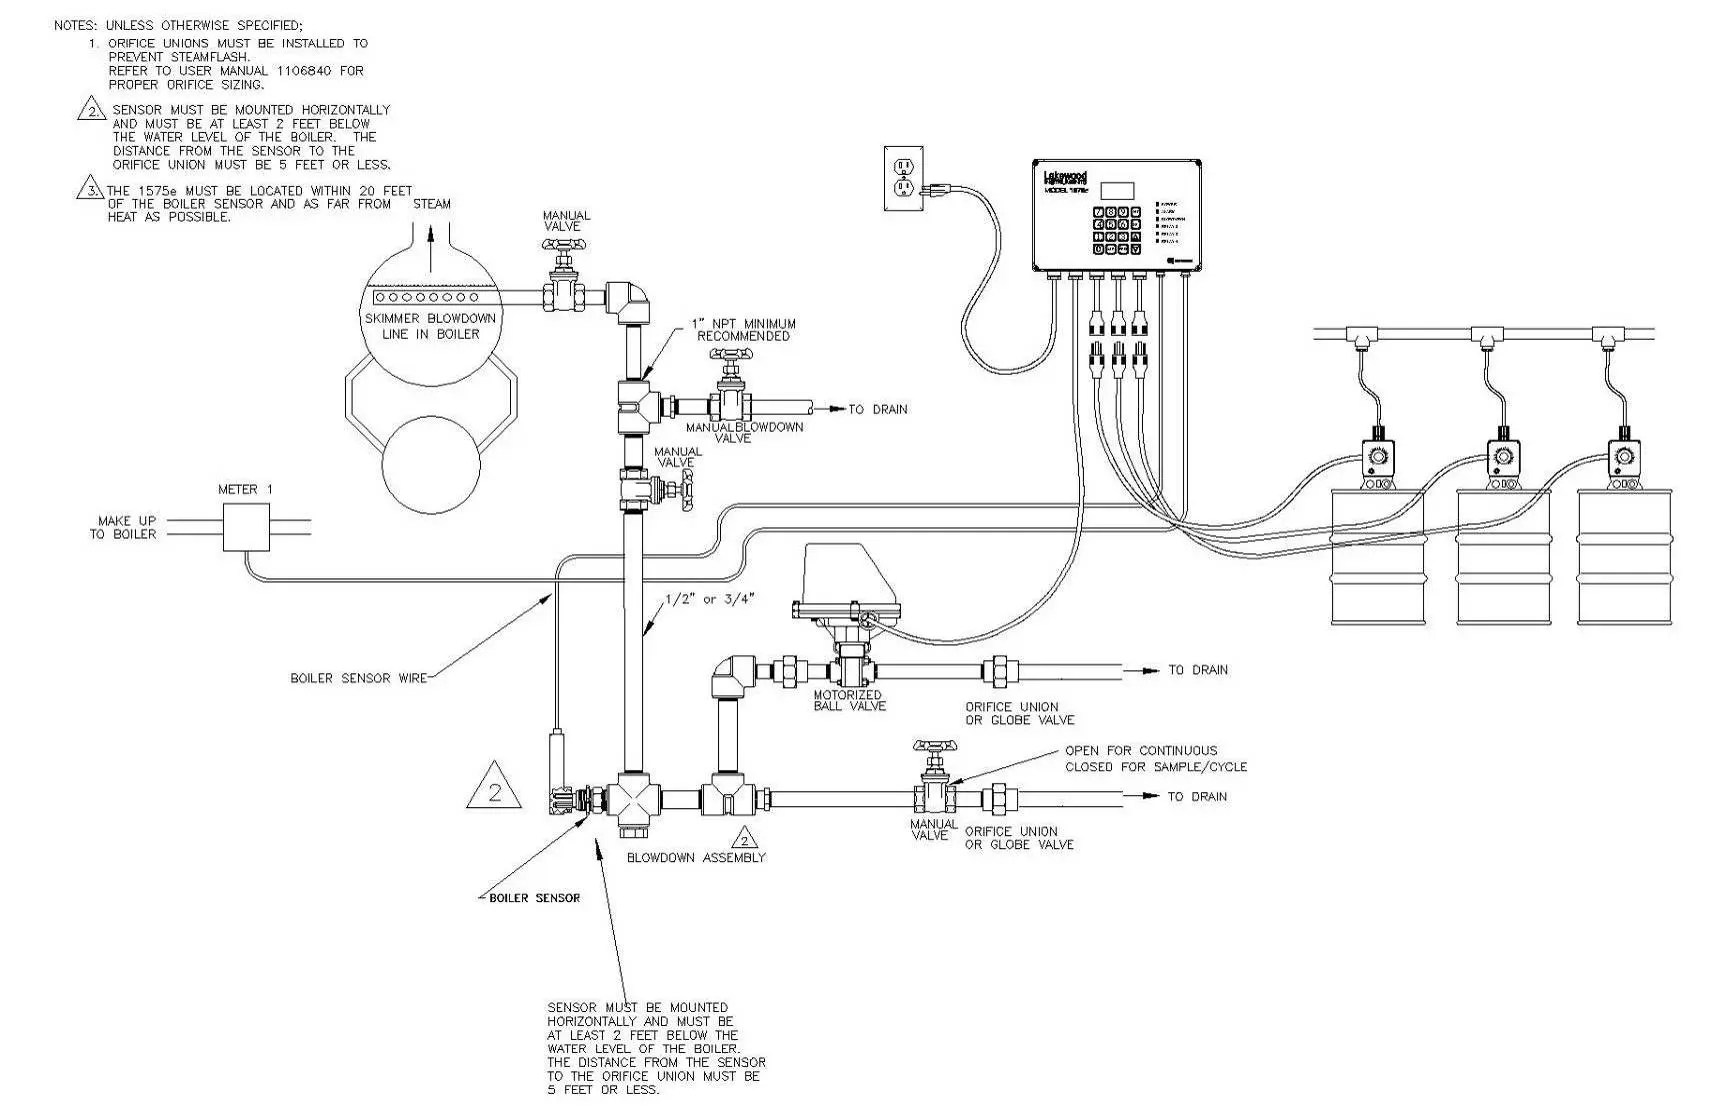 Diagram Of A Boiler Heater System also ED8f 6689 furthermore Boiler Accessories Pdf likewise Air Pressure Switch likewise Boiler Controls Wiring Diagrams. on honeywell boiler aquastat wiring diagram